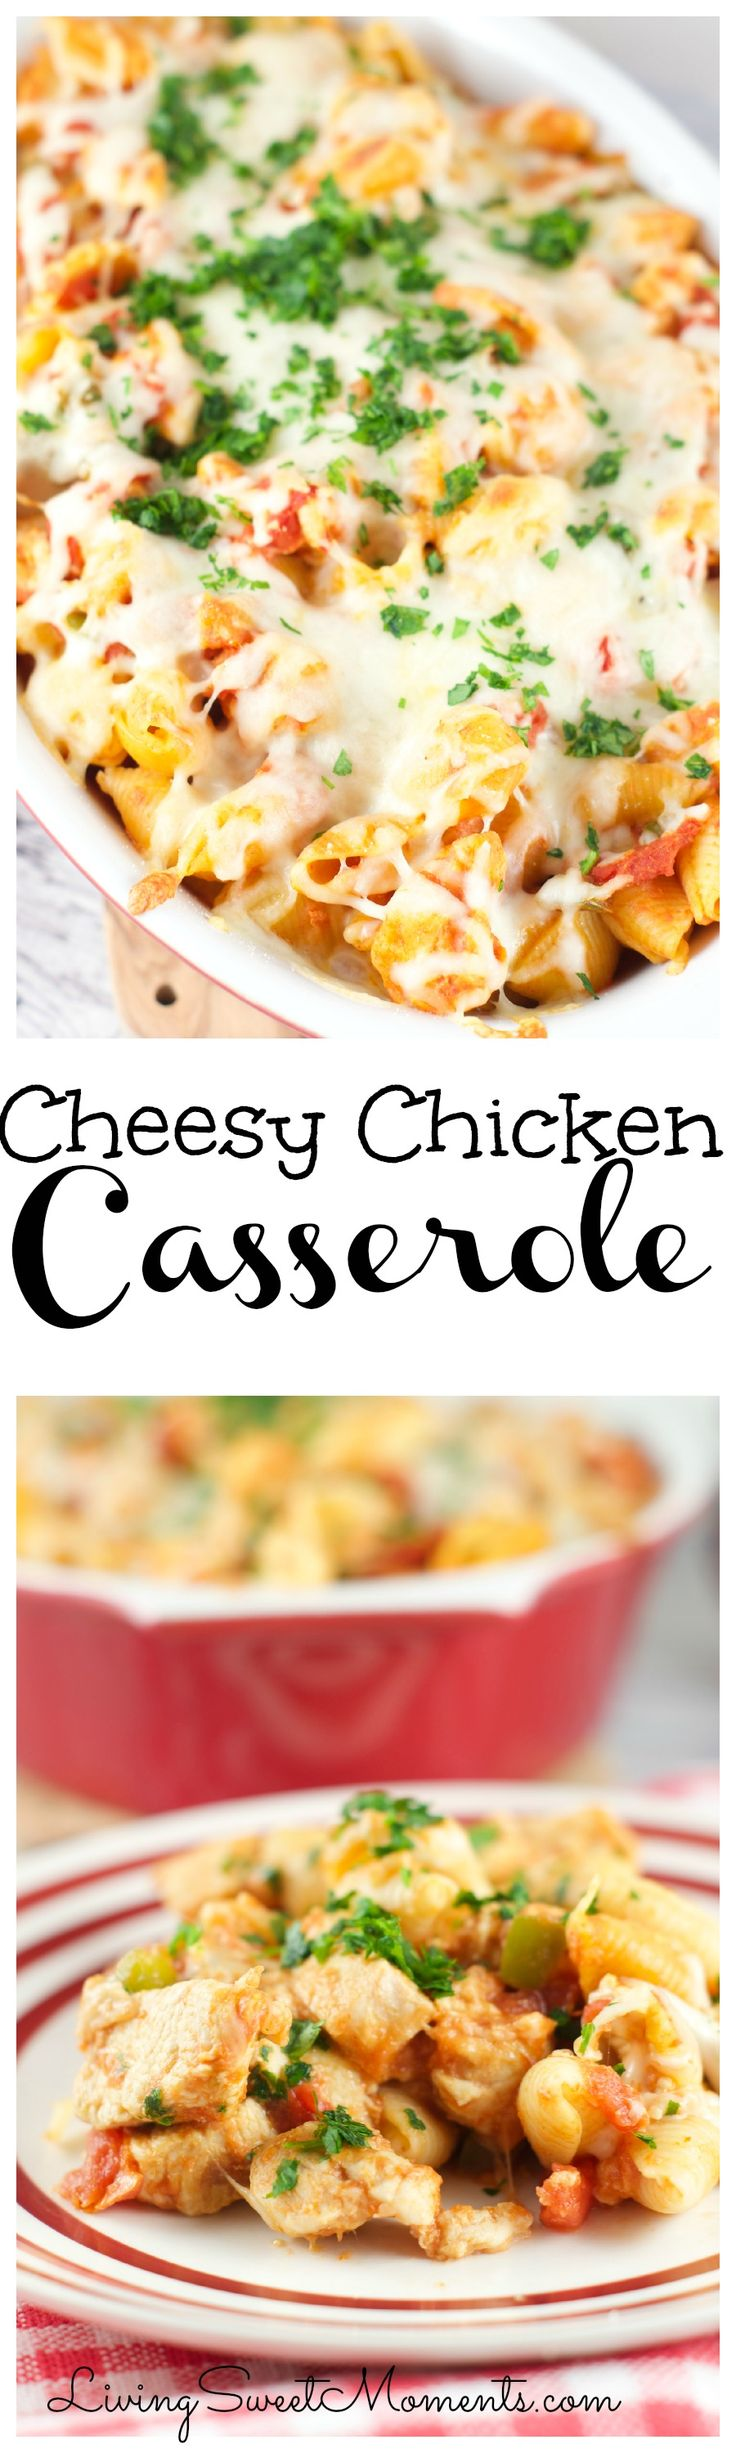 Cheesy Chicken Casserole - Only 6 ingredients. Made with pasta, tomato and cheese. This easy quick dinner recipe is delicious, hearty and oh so satisfying.